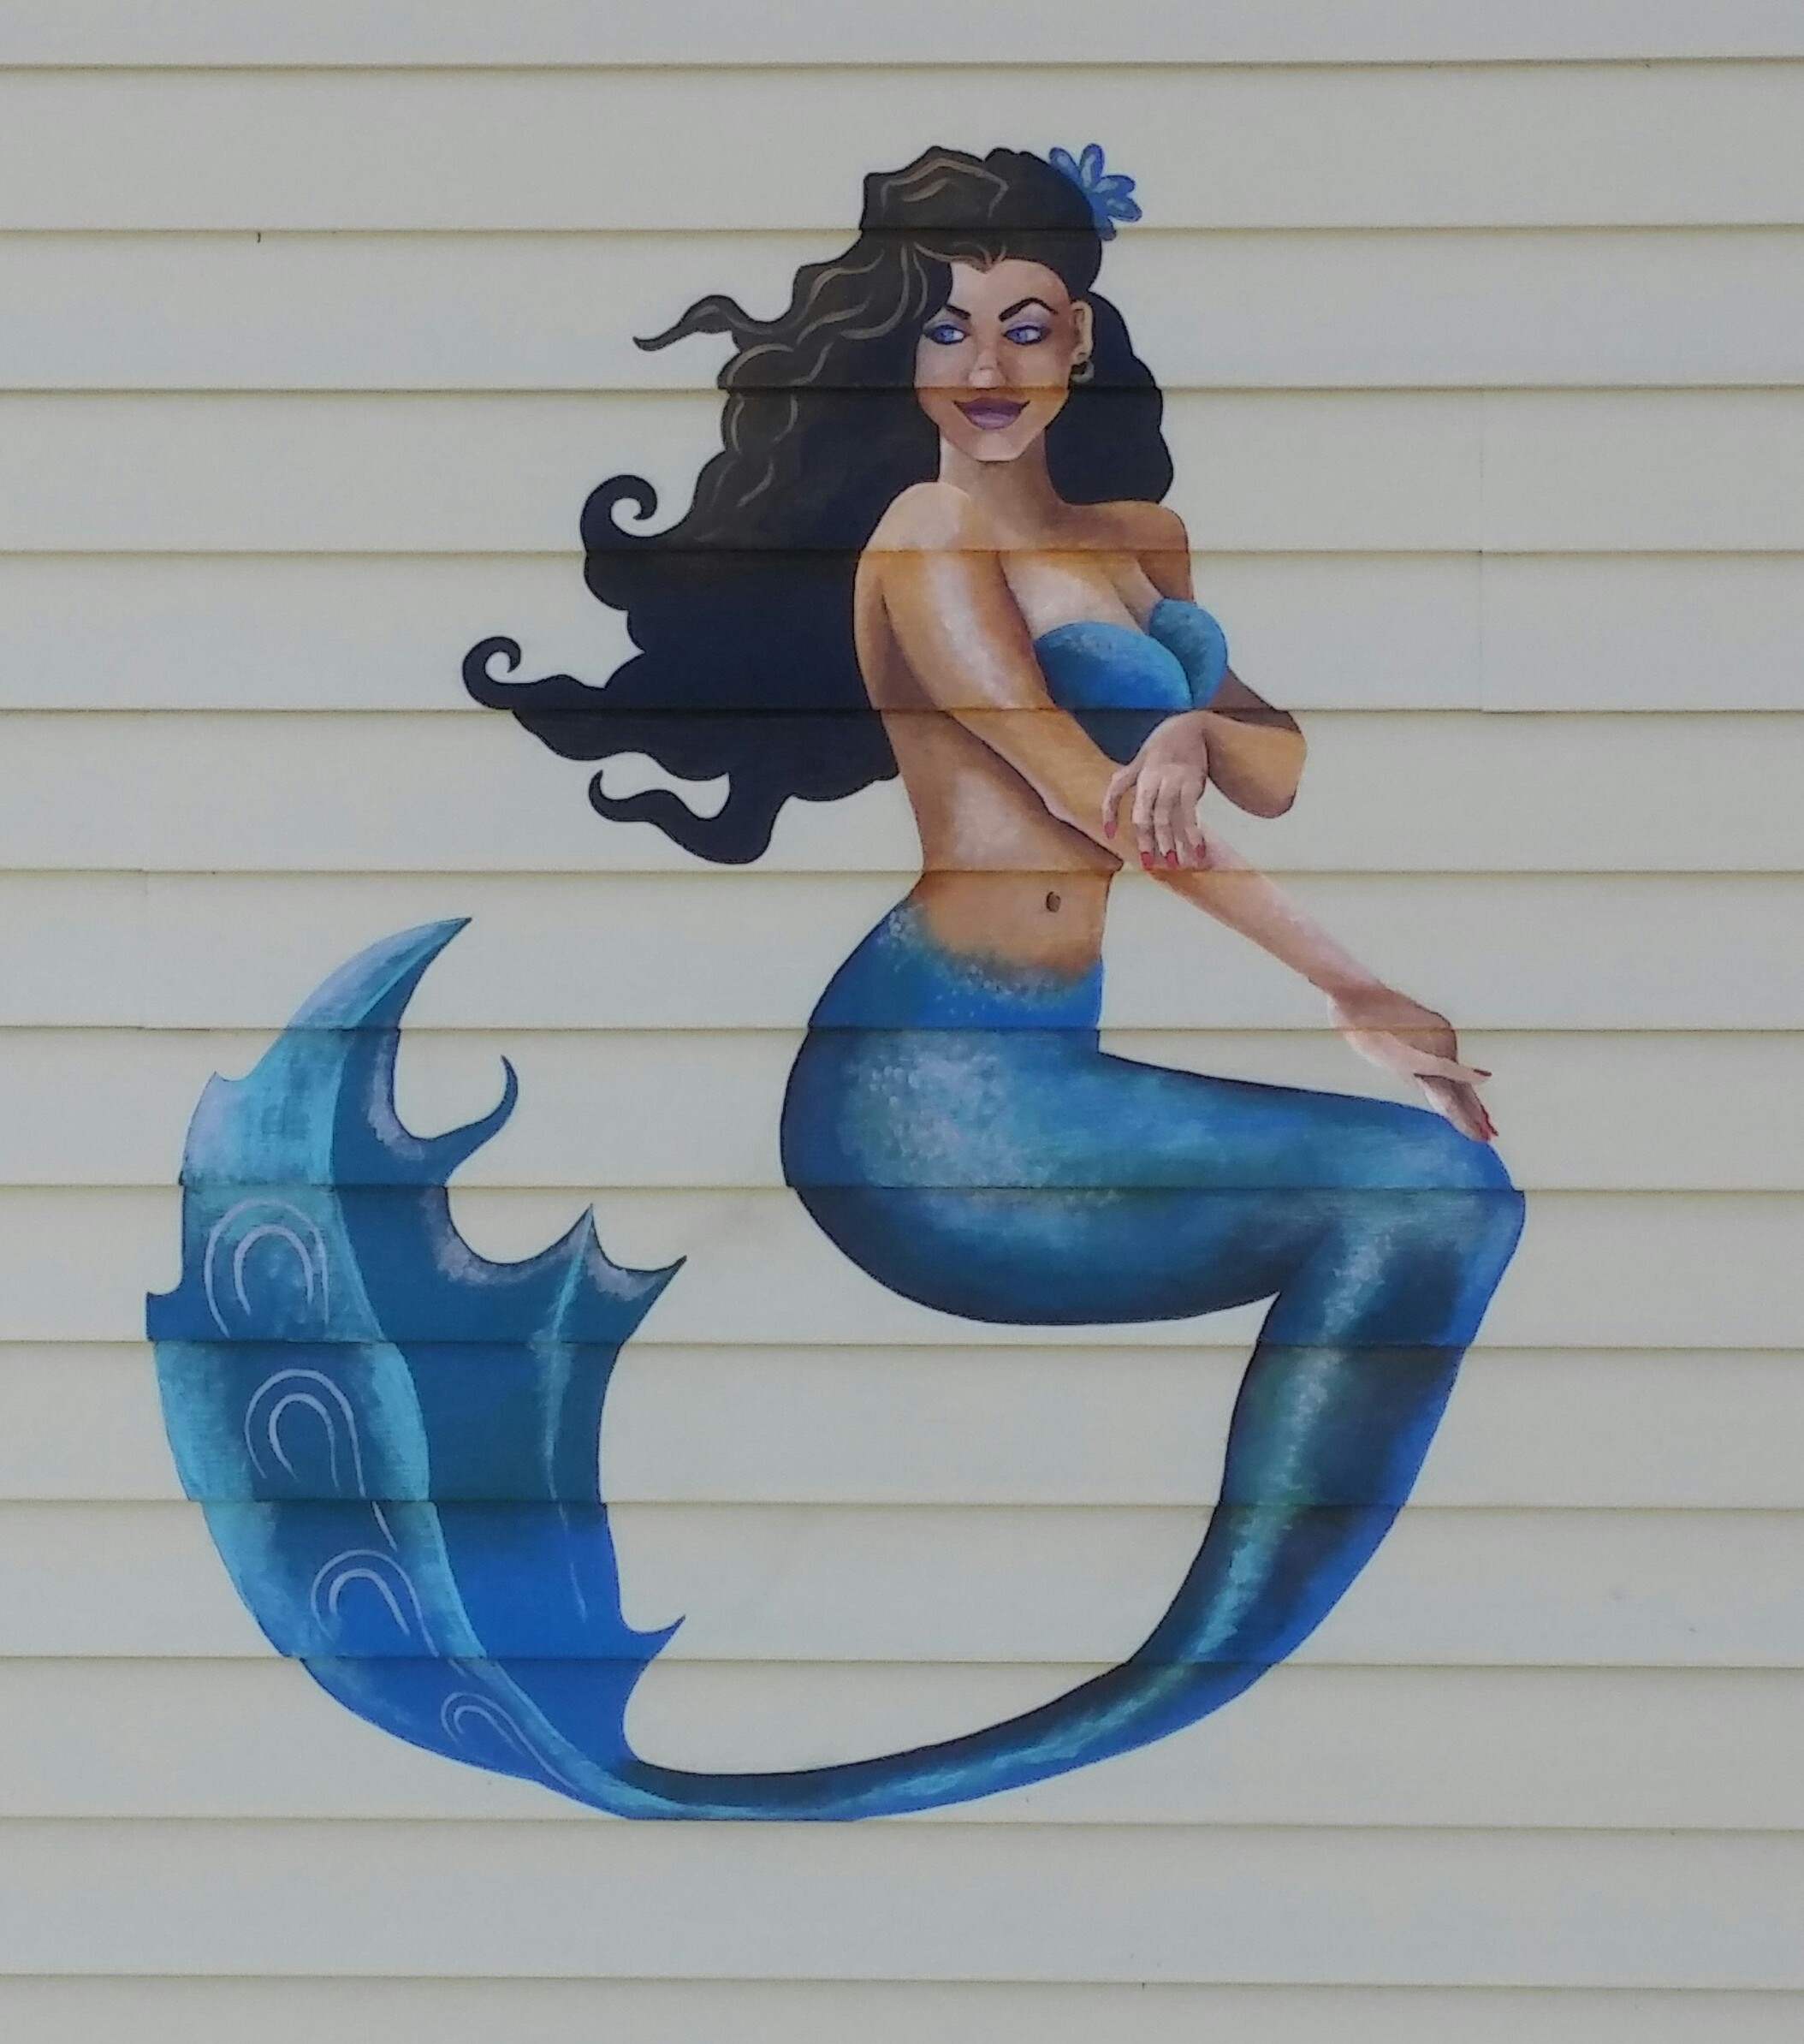 Mermaid Mural in Sundowner Park/133rd St.